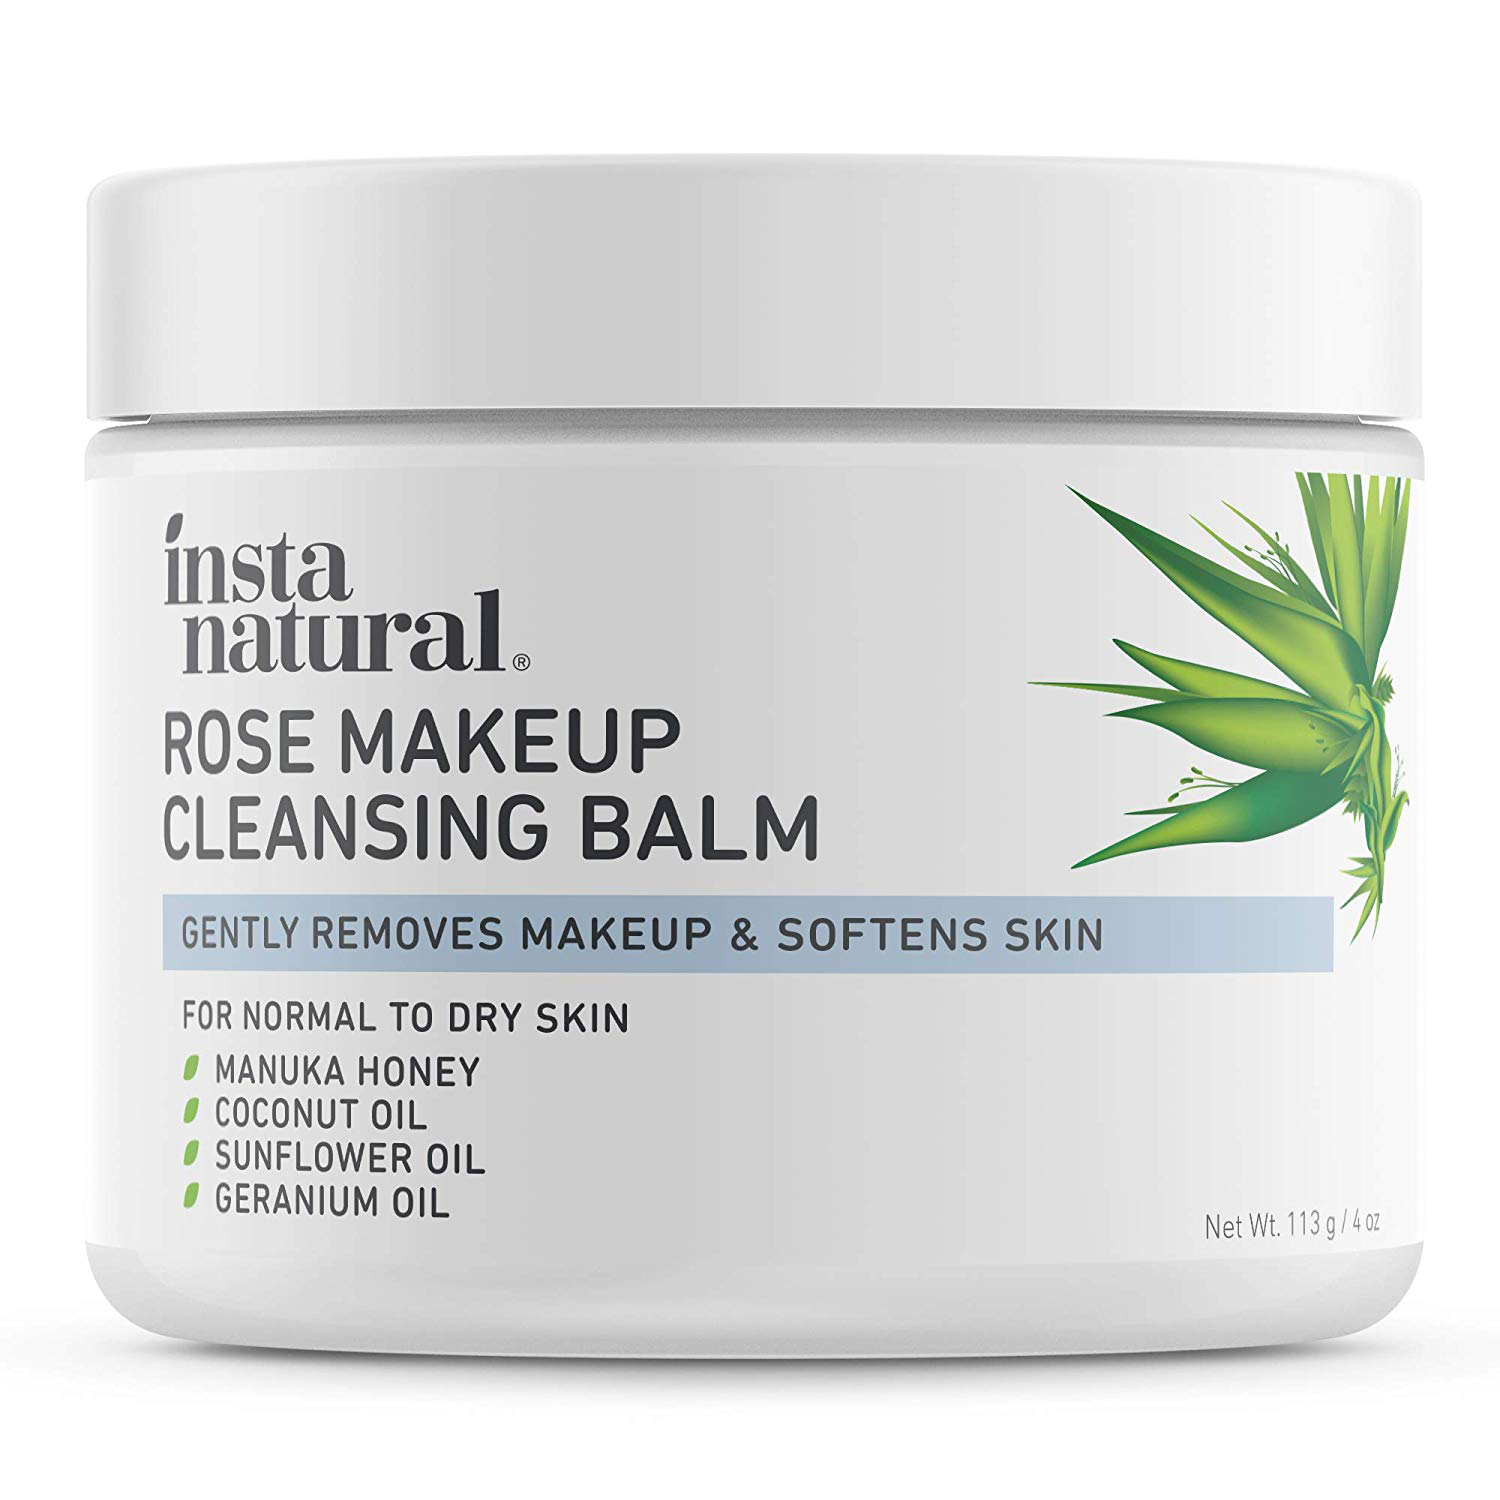 Rose Cleansing Balm Facial Cleanser & Makeup Remover